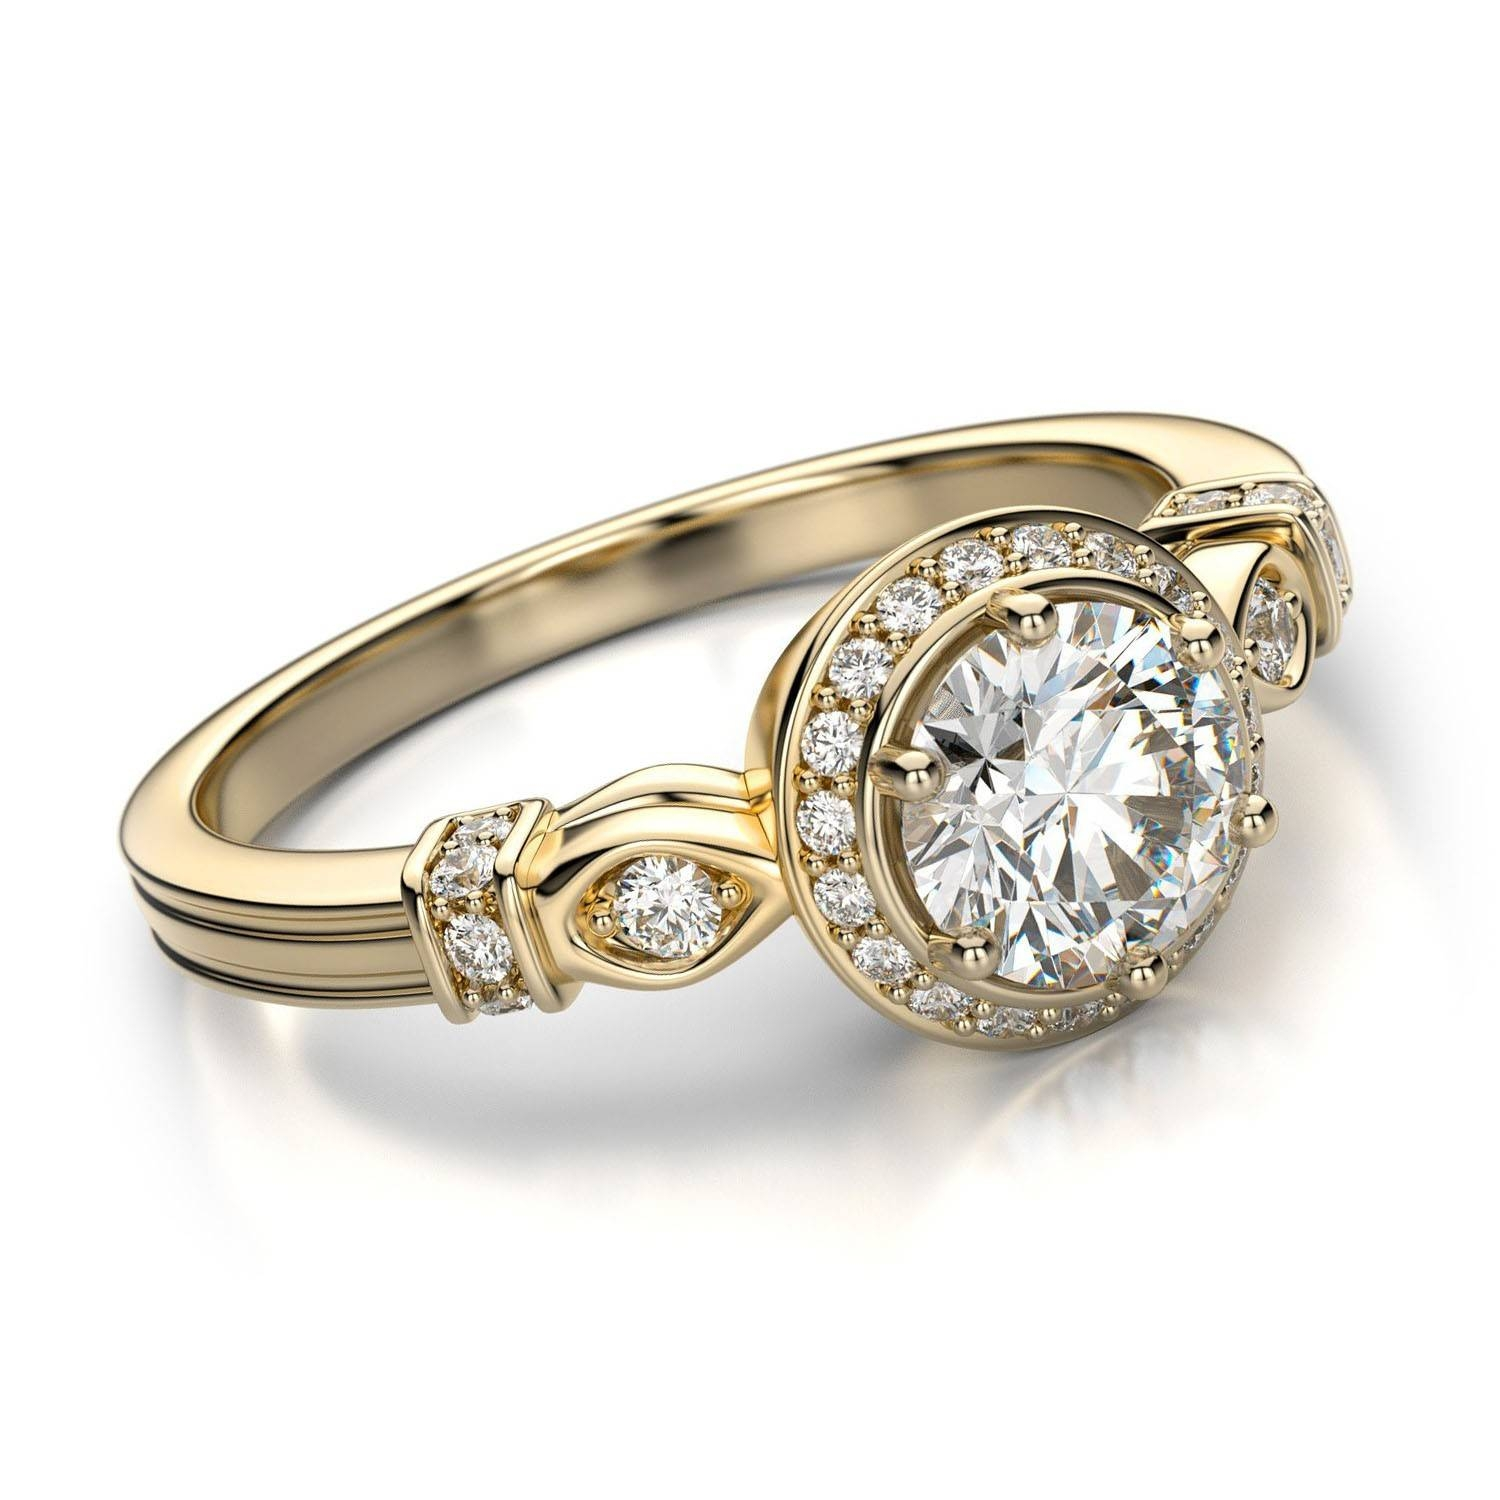 Old Fashioned Style Wedding Rings Luxury Vintage Style Wedding Regarding Vintage Style Wedding Rings For Women (View 9 of 15)